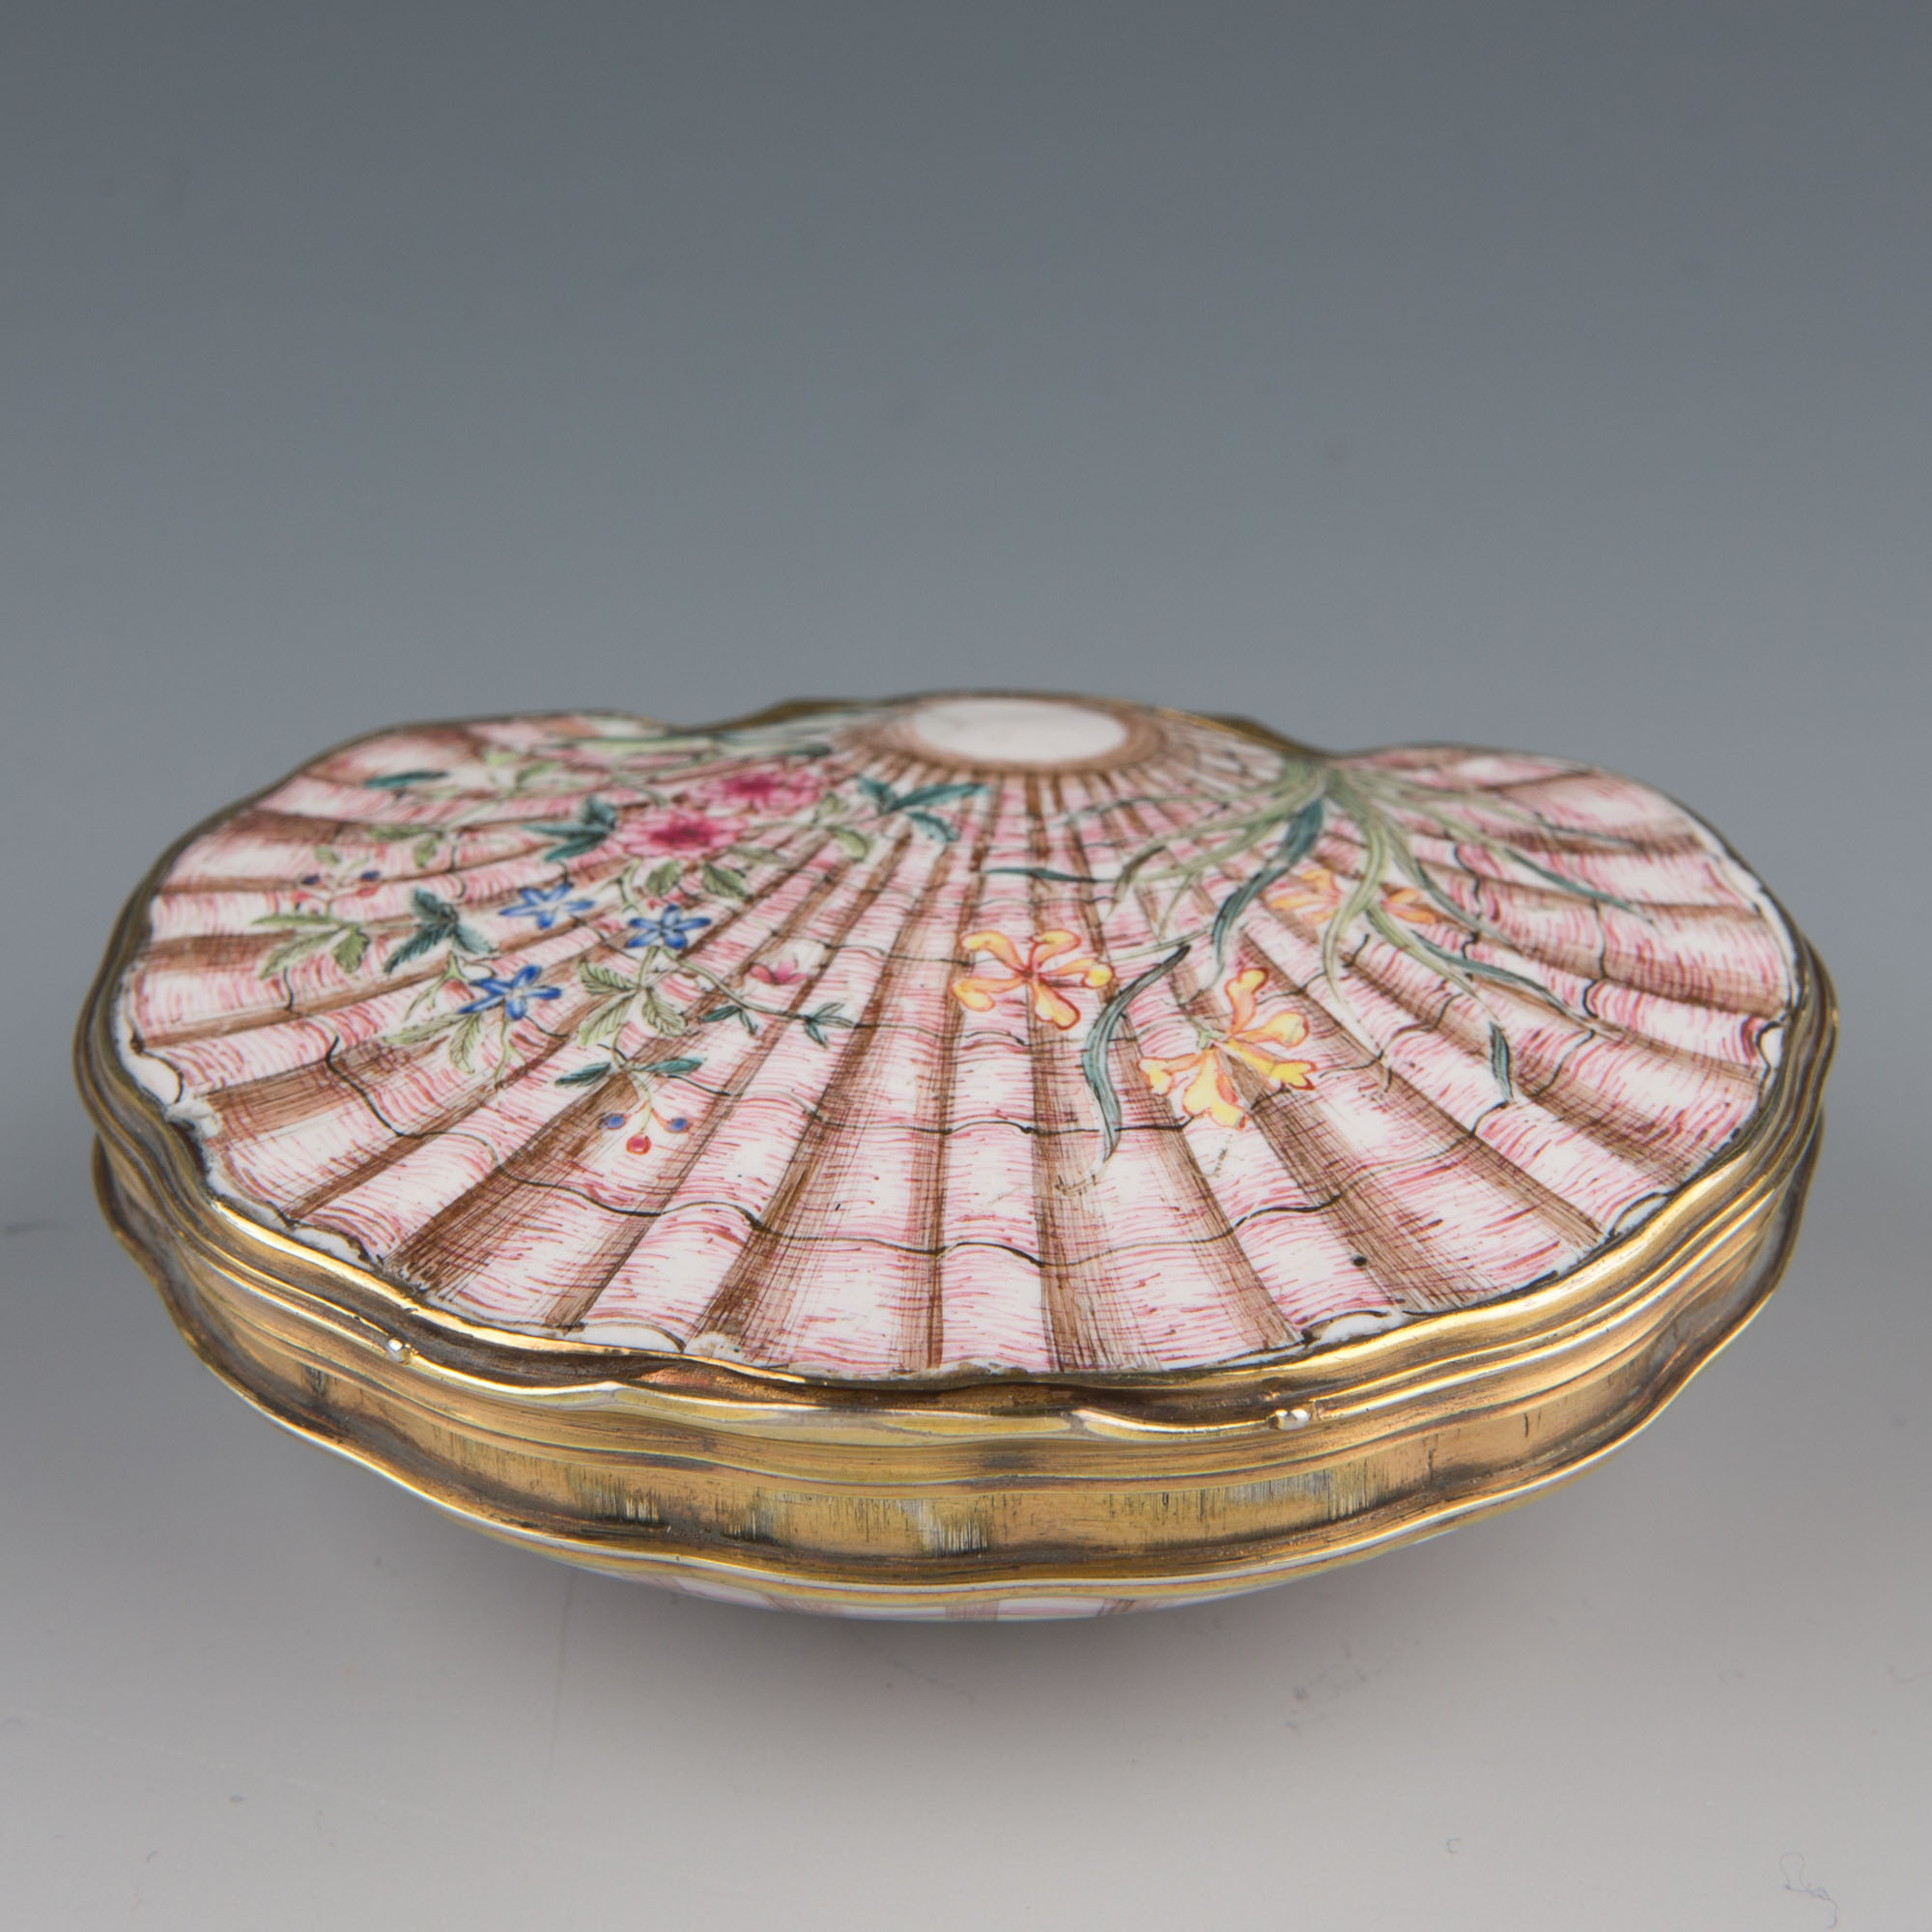 A Cantonese giltmetal-mounted enamel shell snuff box, mid 18th Century.